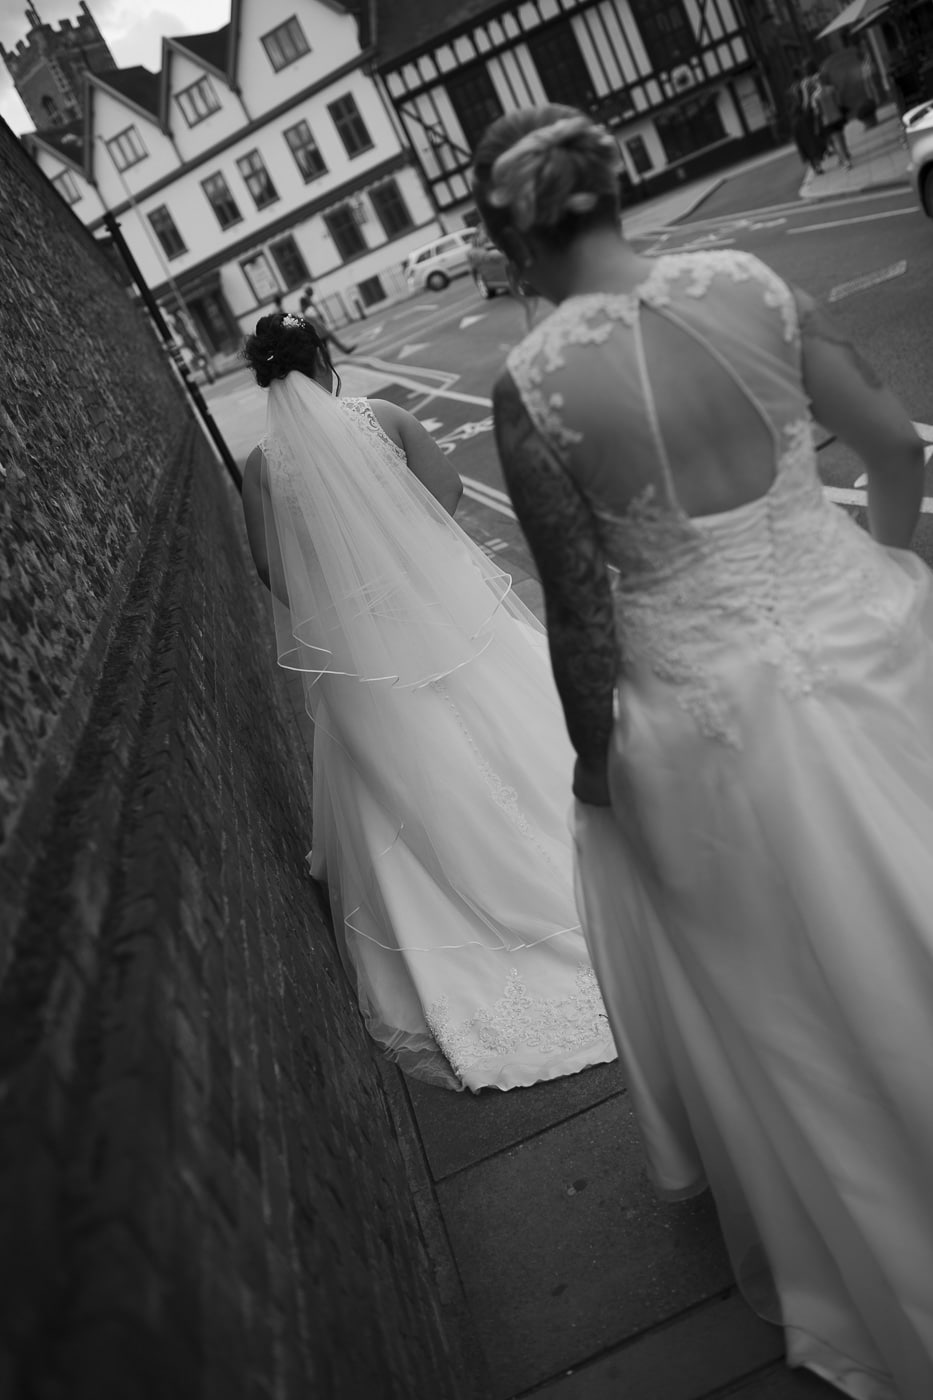 Brides walking down street together for wedding by Joshua Wyborn photography